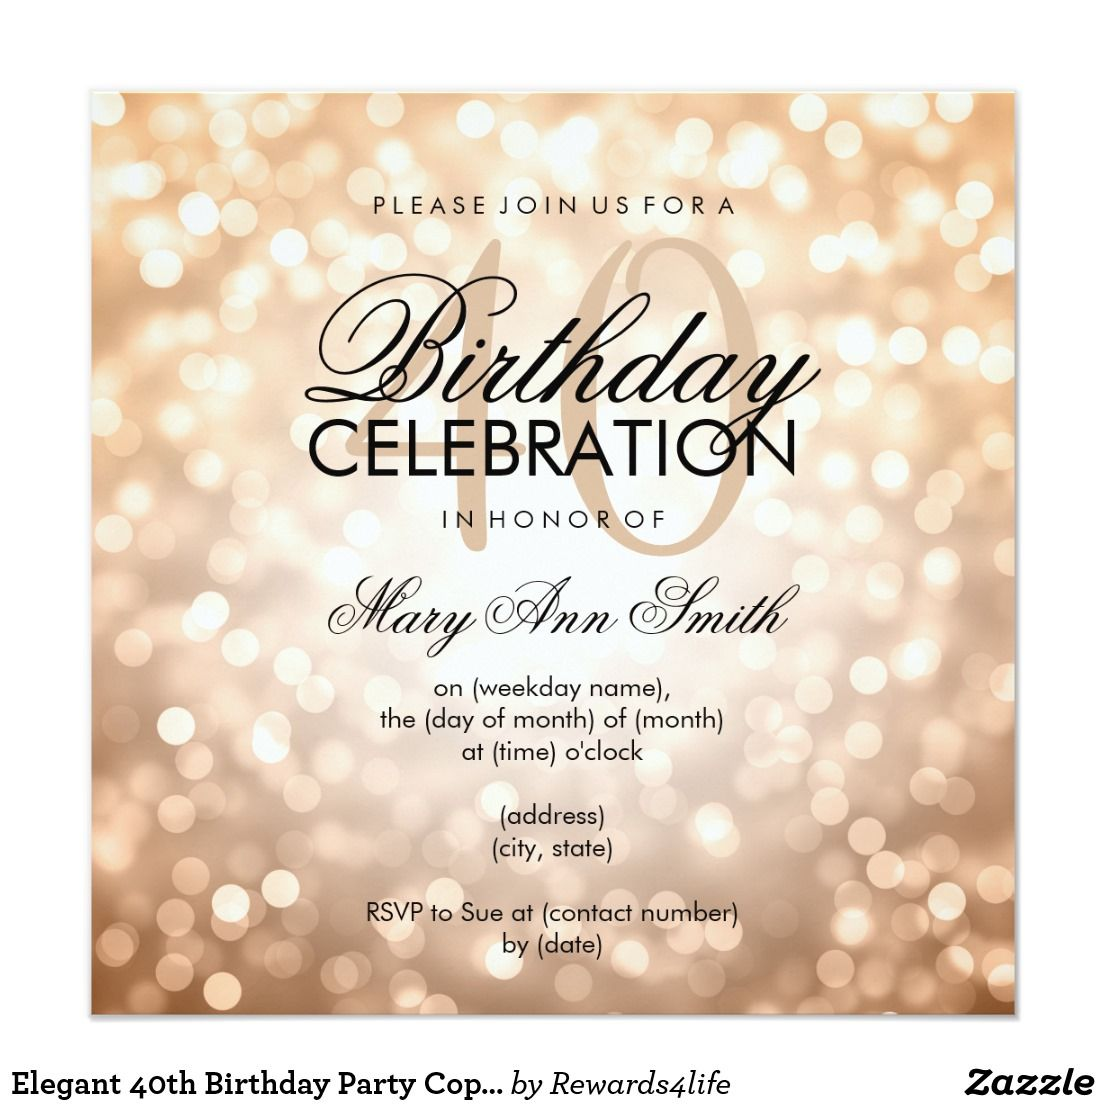 Elegant 40th Birthday Party Copper Glitter Lights Invitation ...